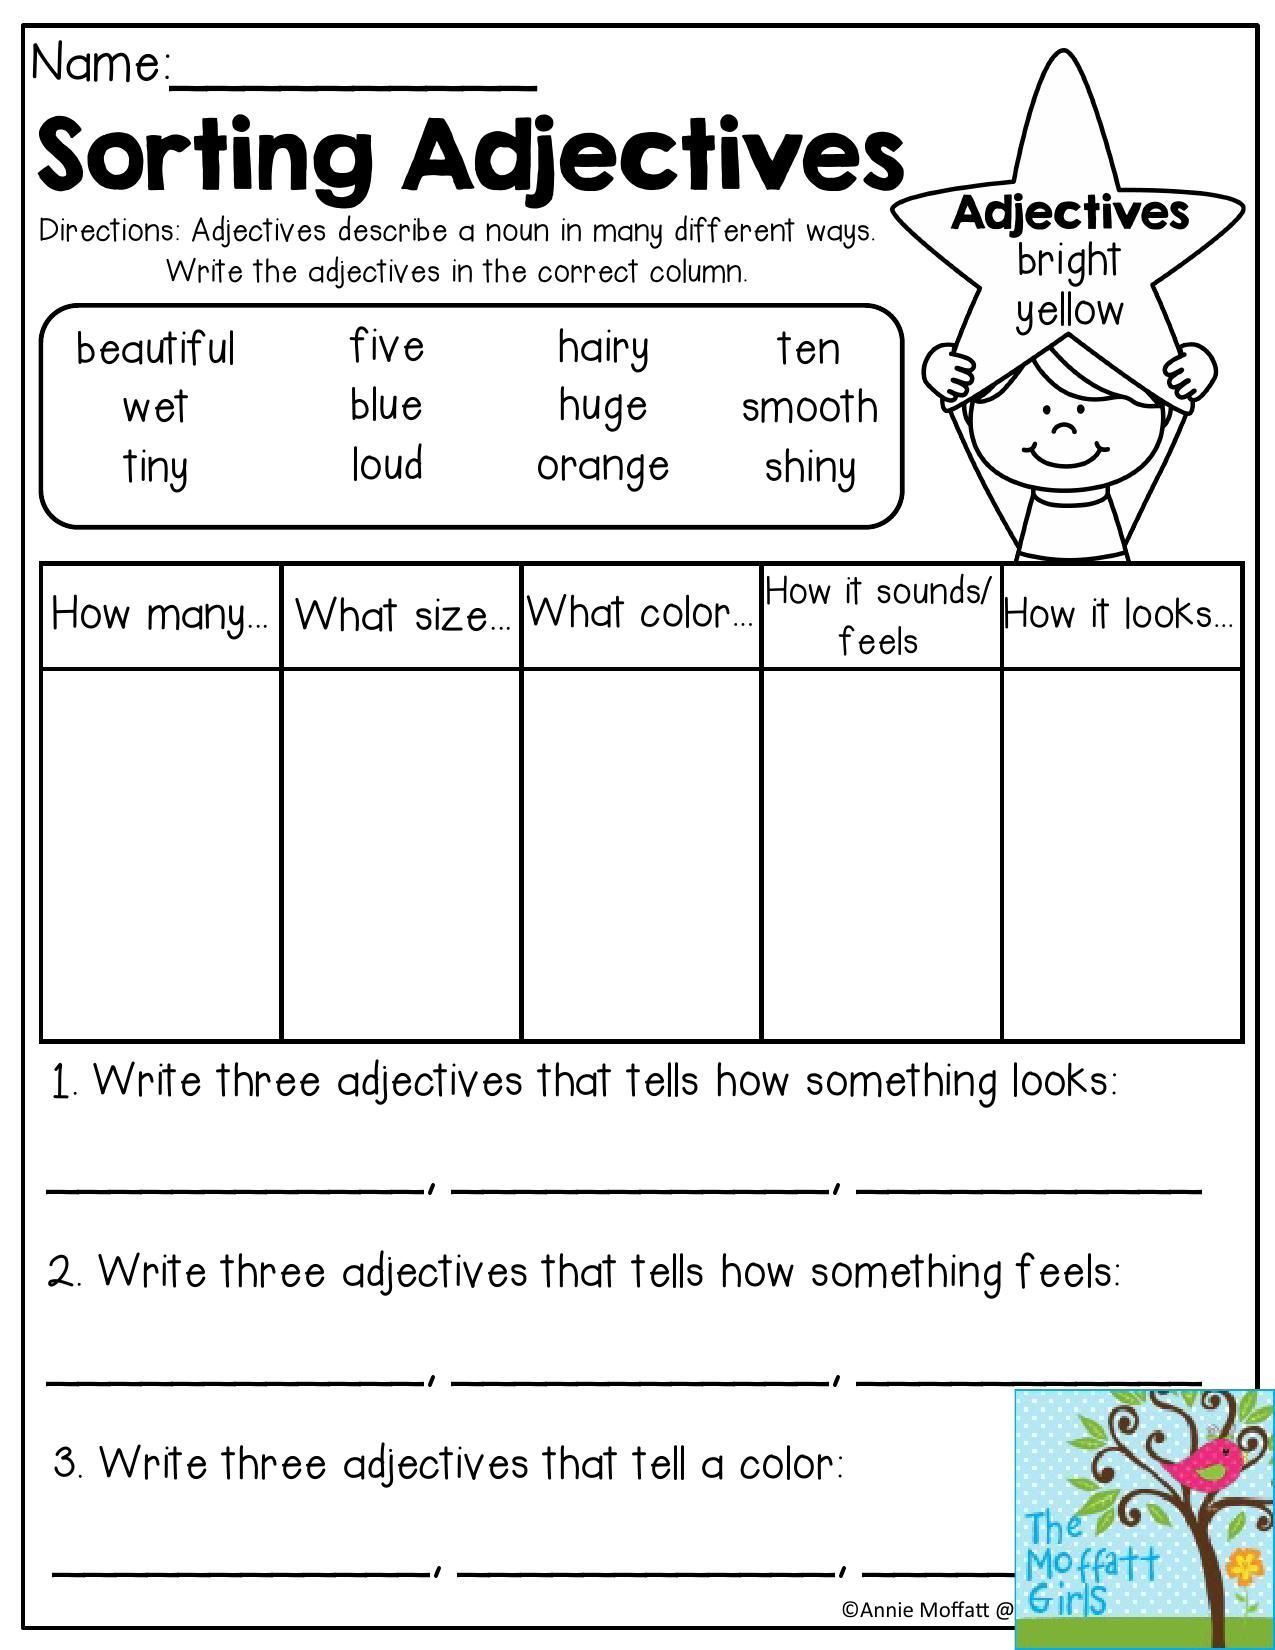 Sorting Adjectives